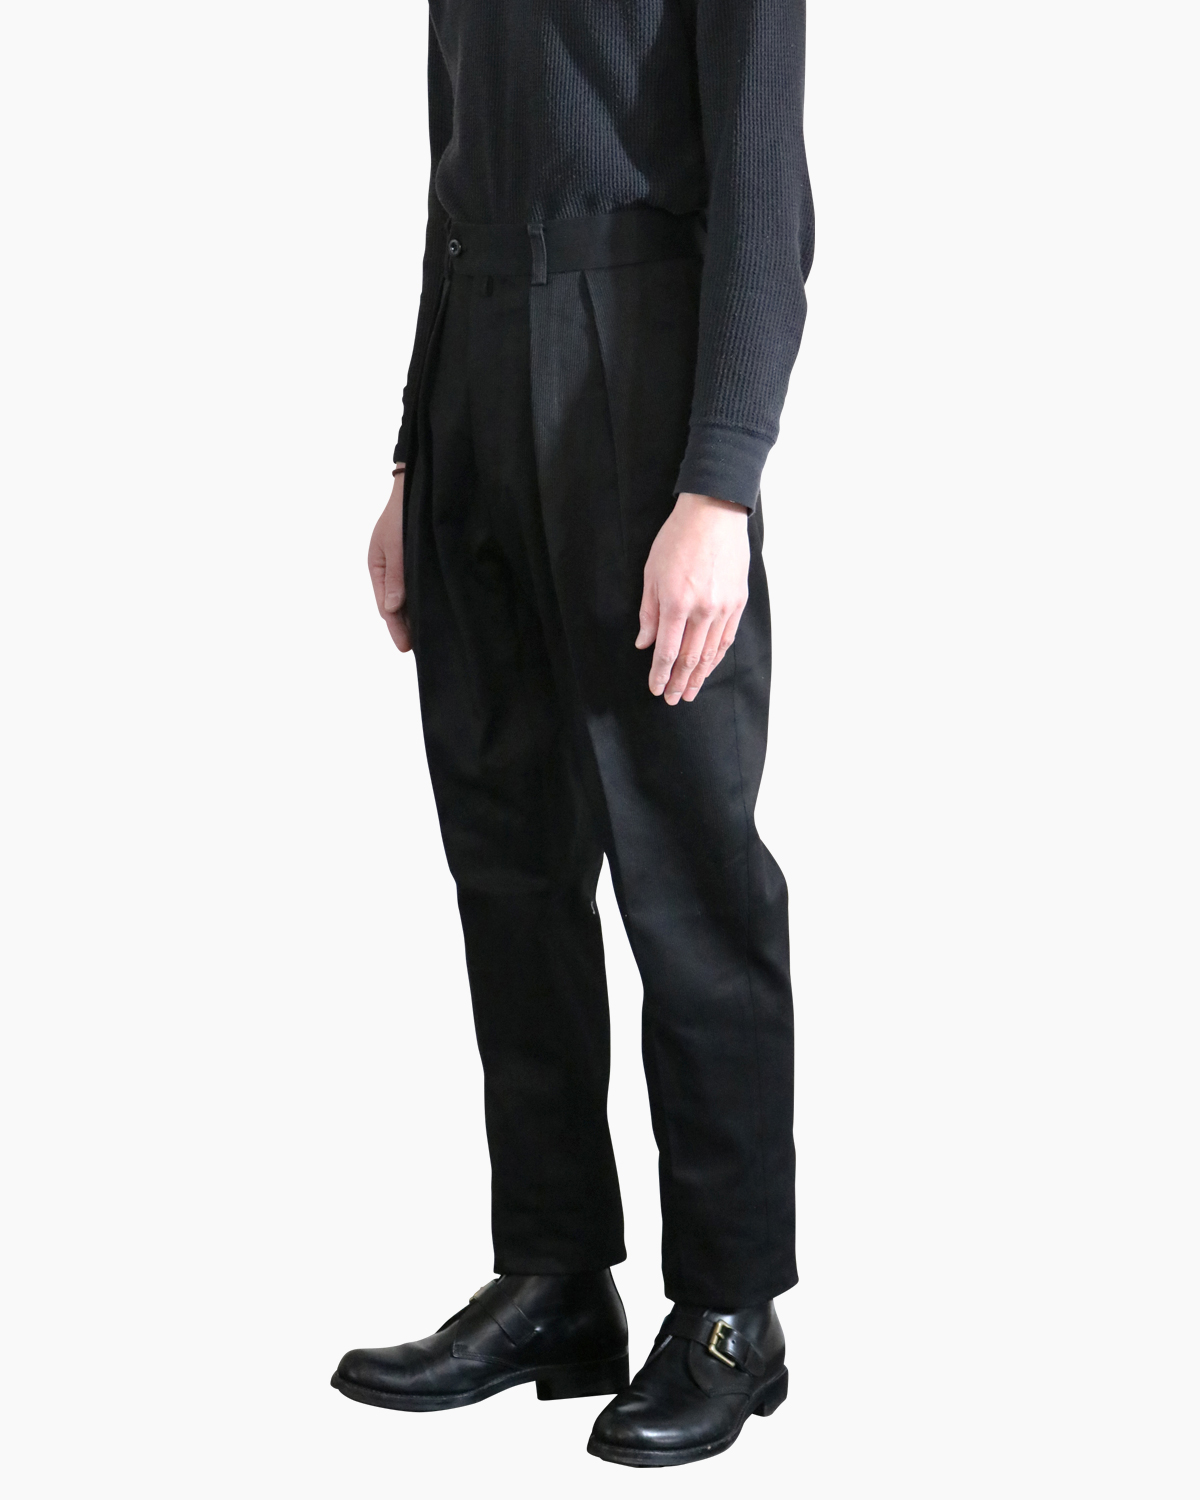 COTTON PIQUE|TAPERED - Black|NEAT